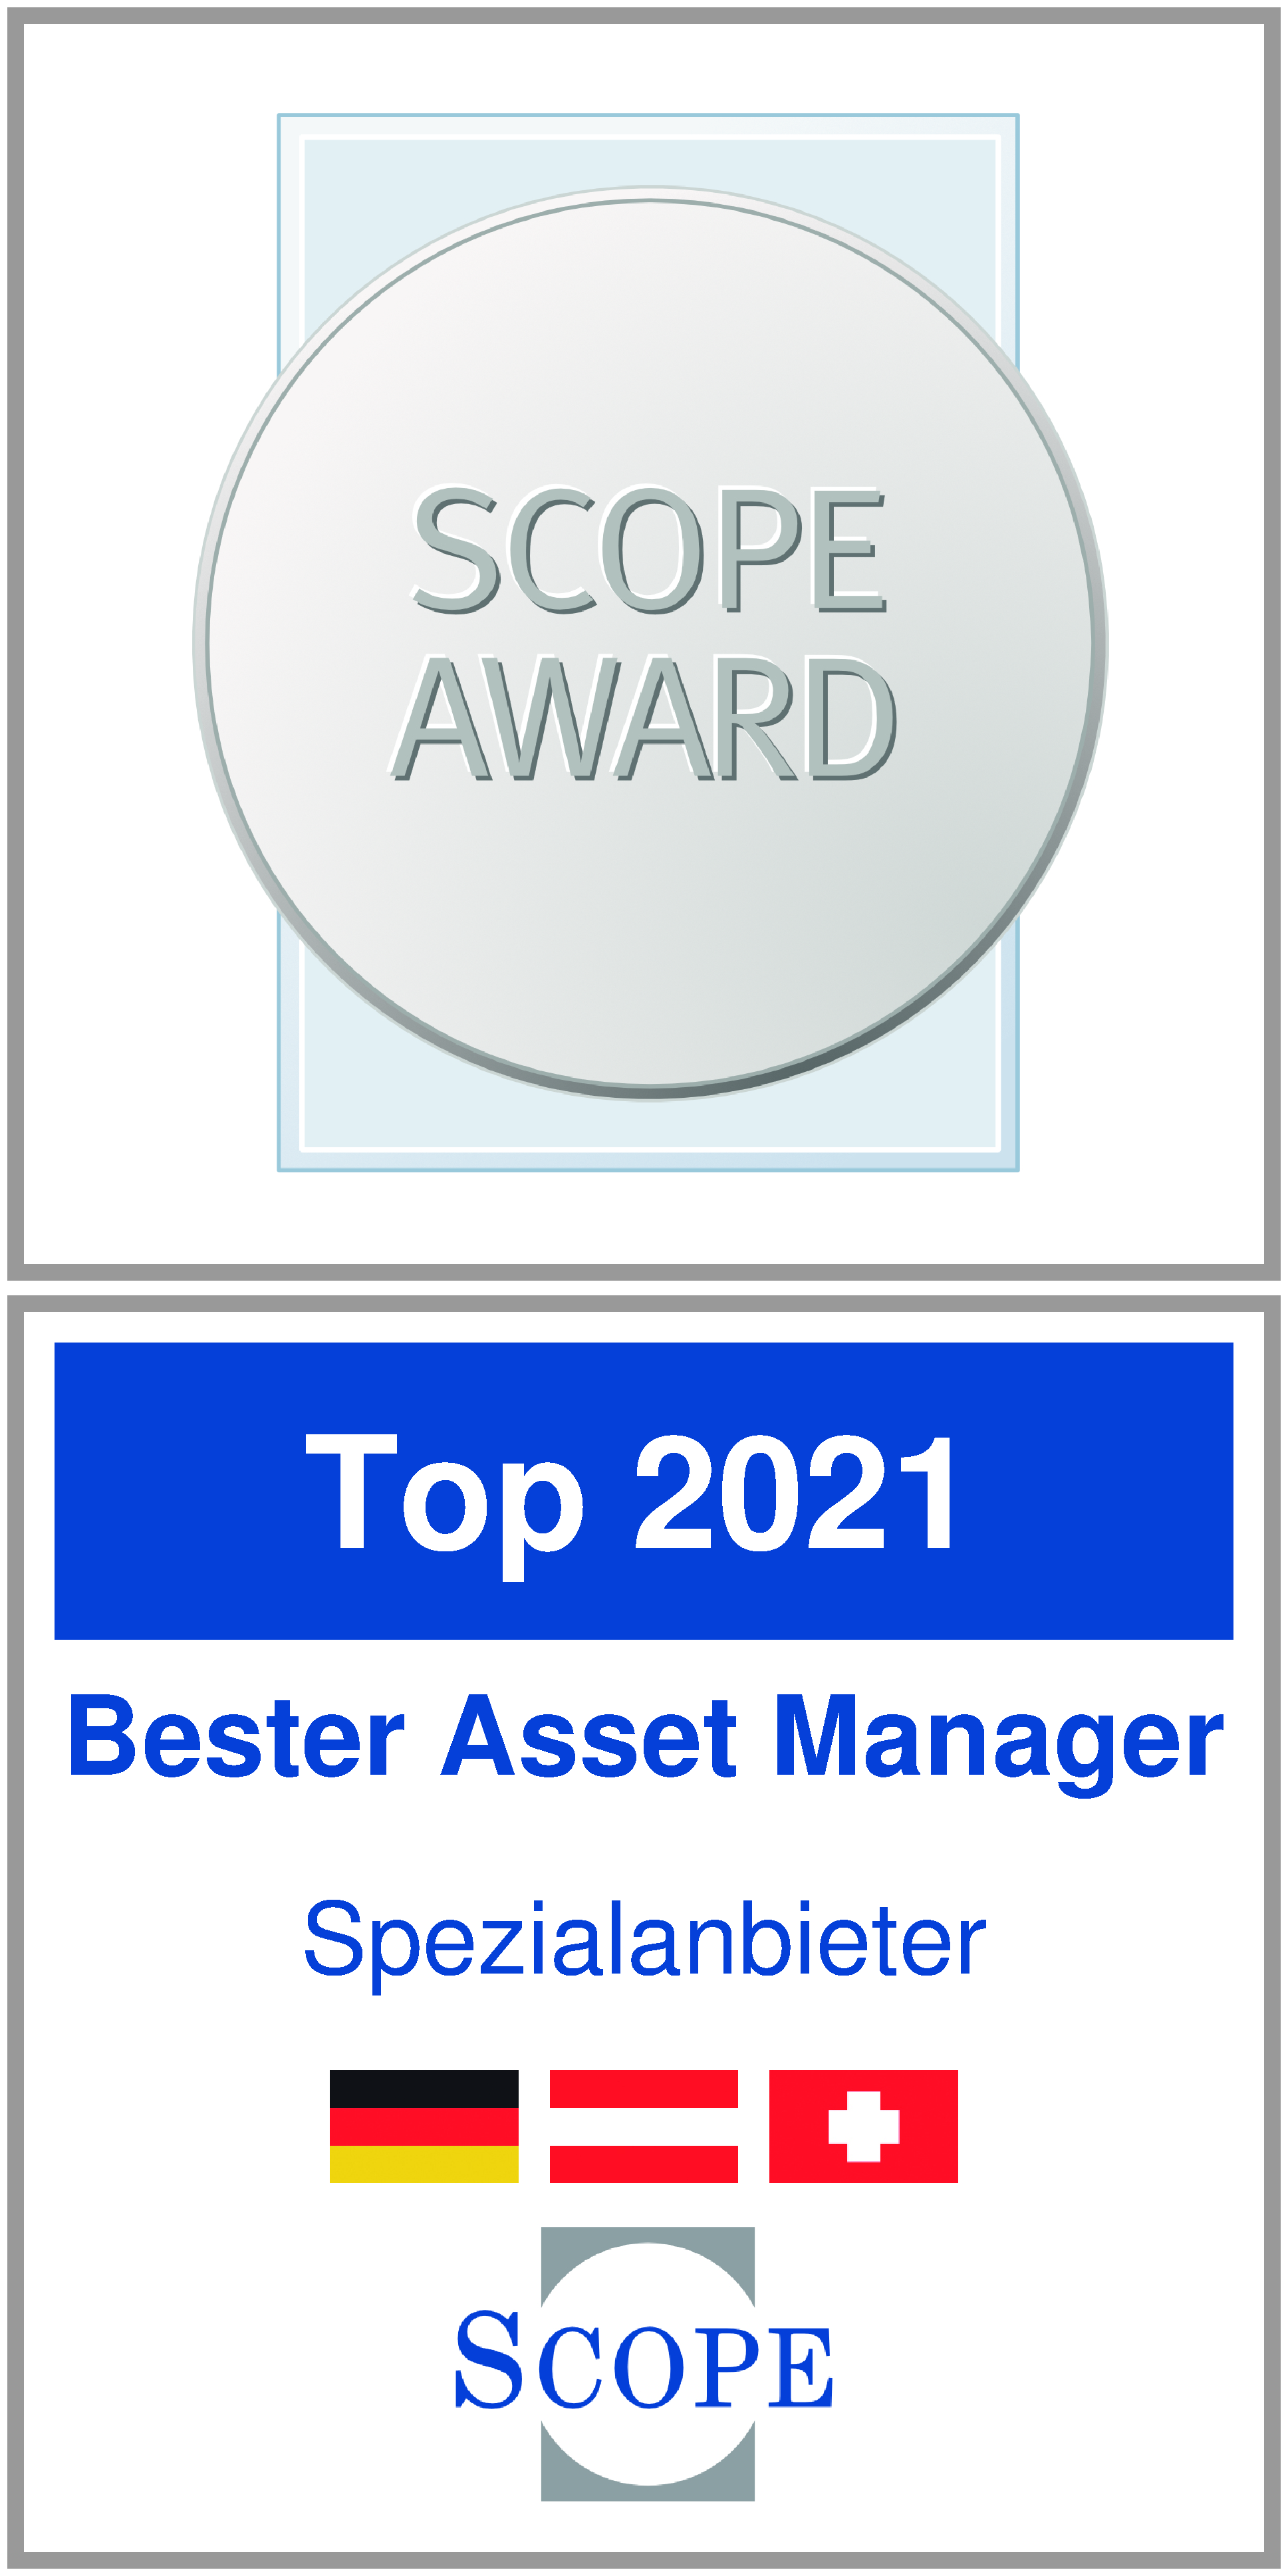 Top Asset Manager